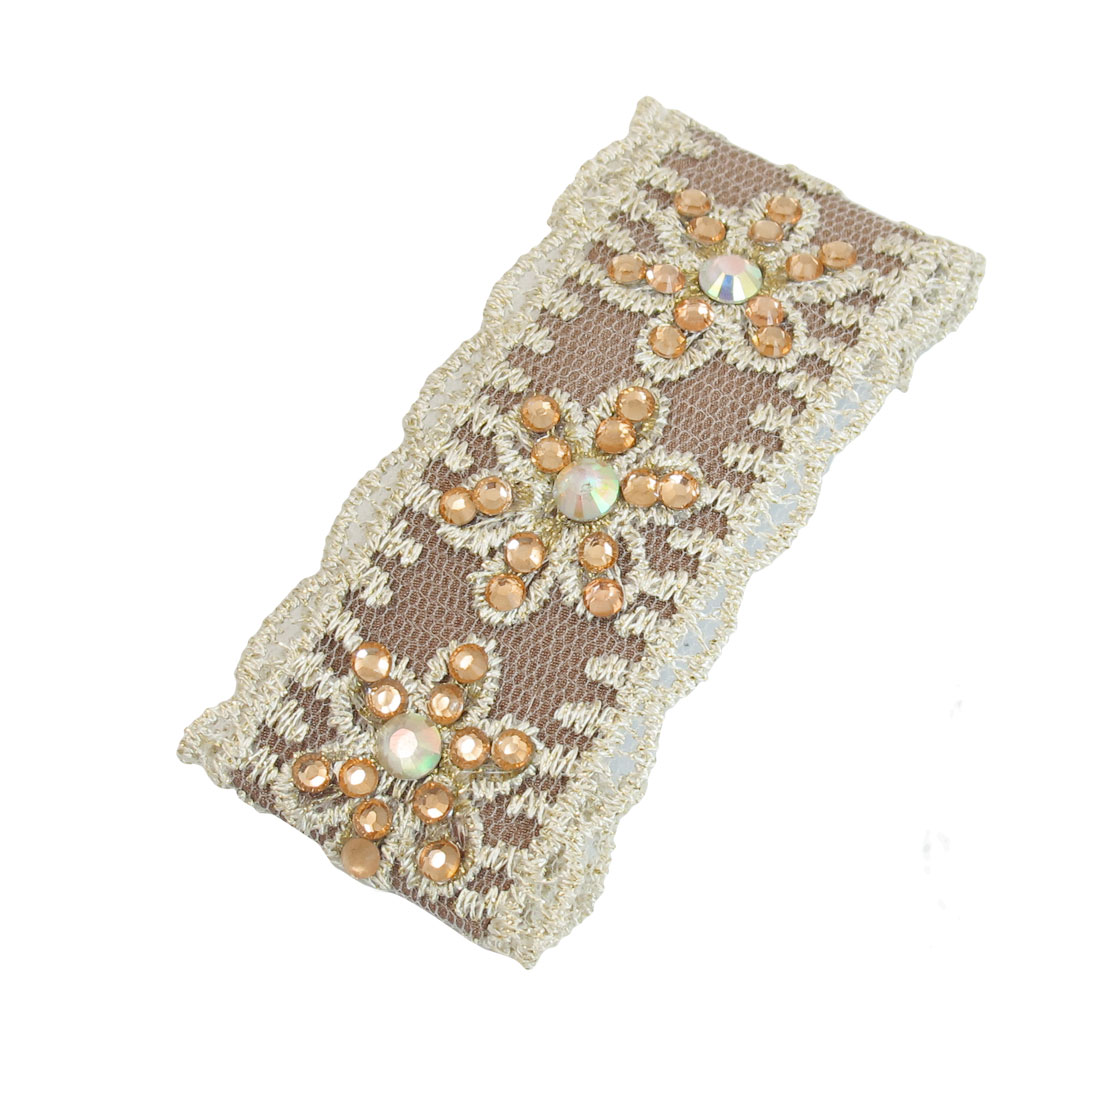 Lace Rhinestone Floral Detail Ladies Brown Metal Barrette Hair Clip